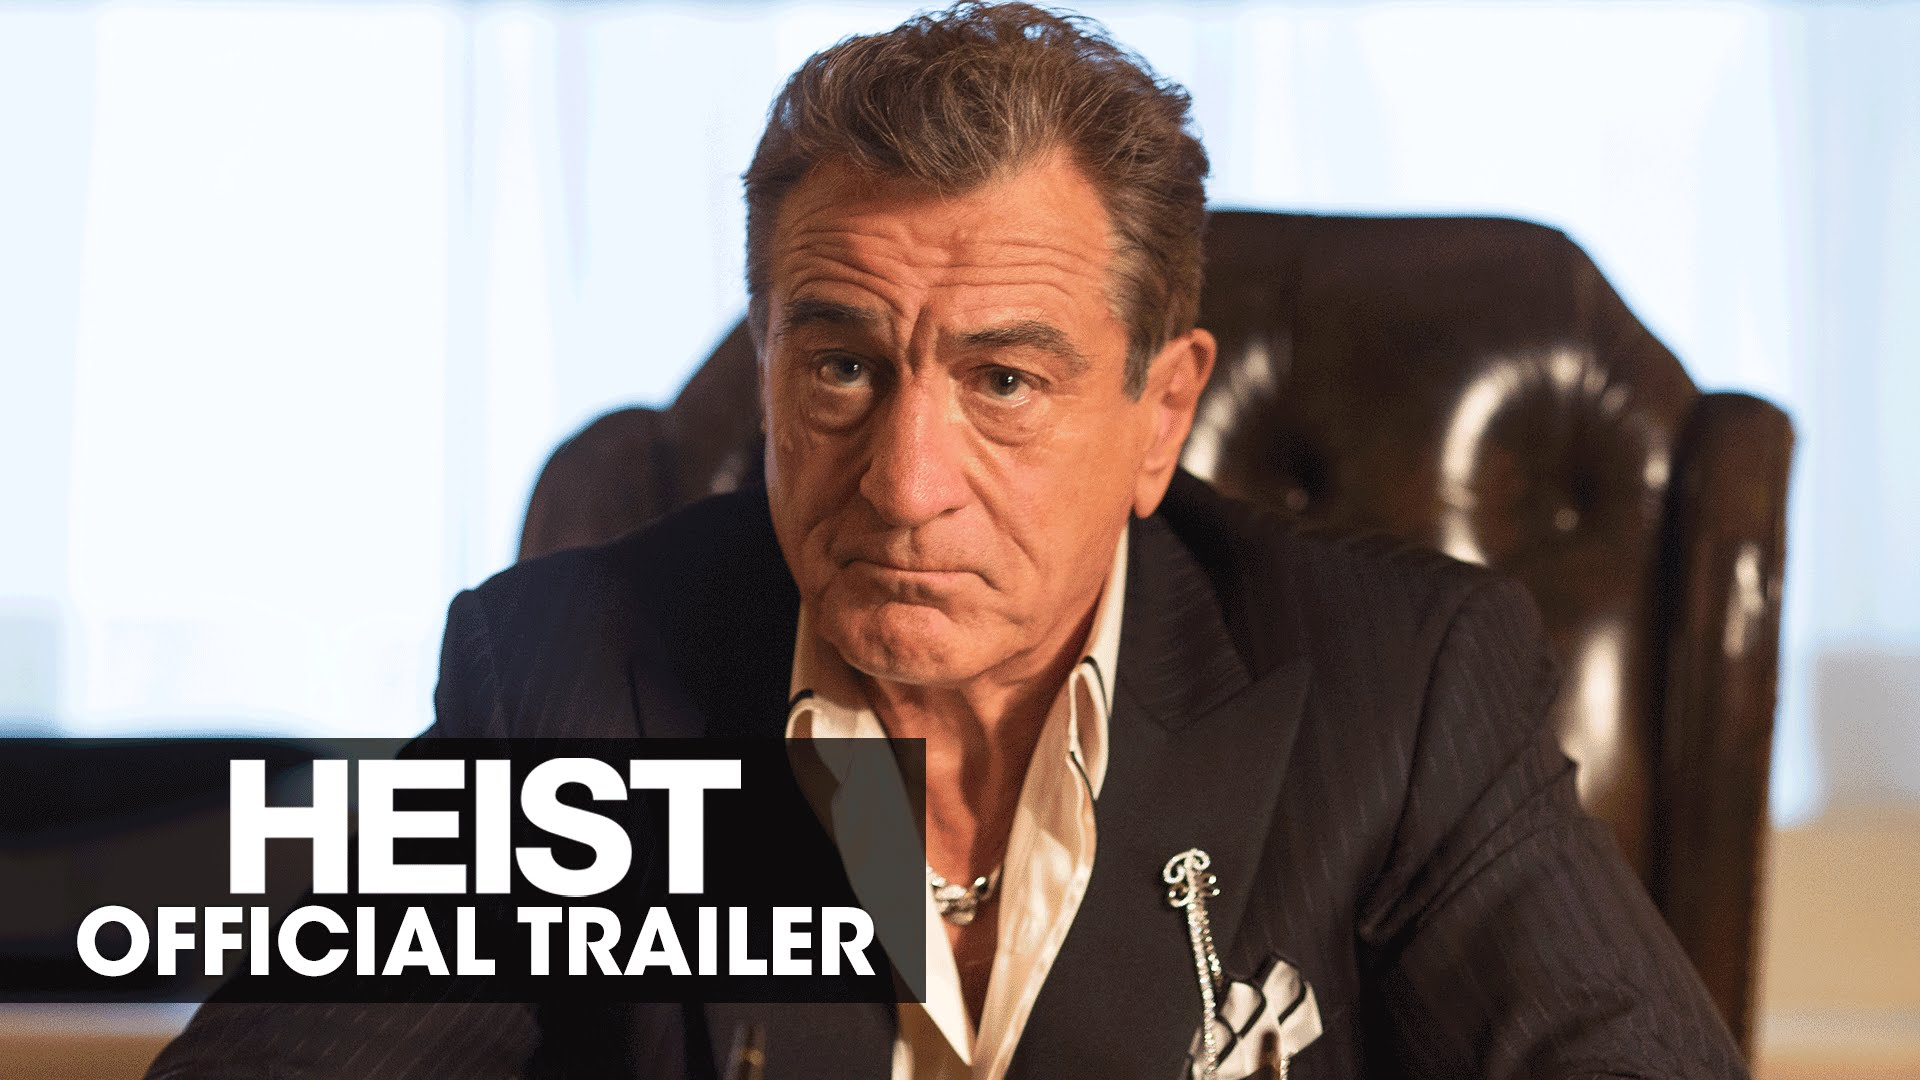 HEIST (2015 Movie – Robert De Niro, Jeffrey Dean Morgan) – Official Trailer